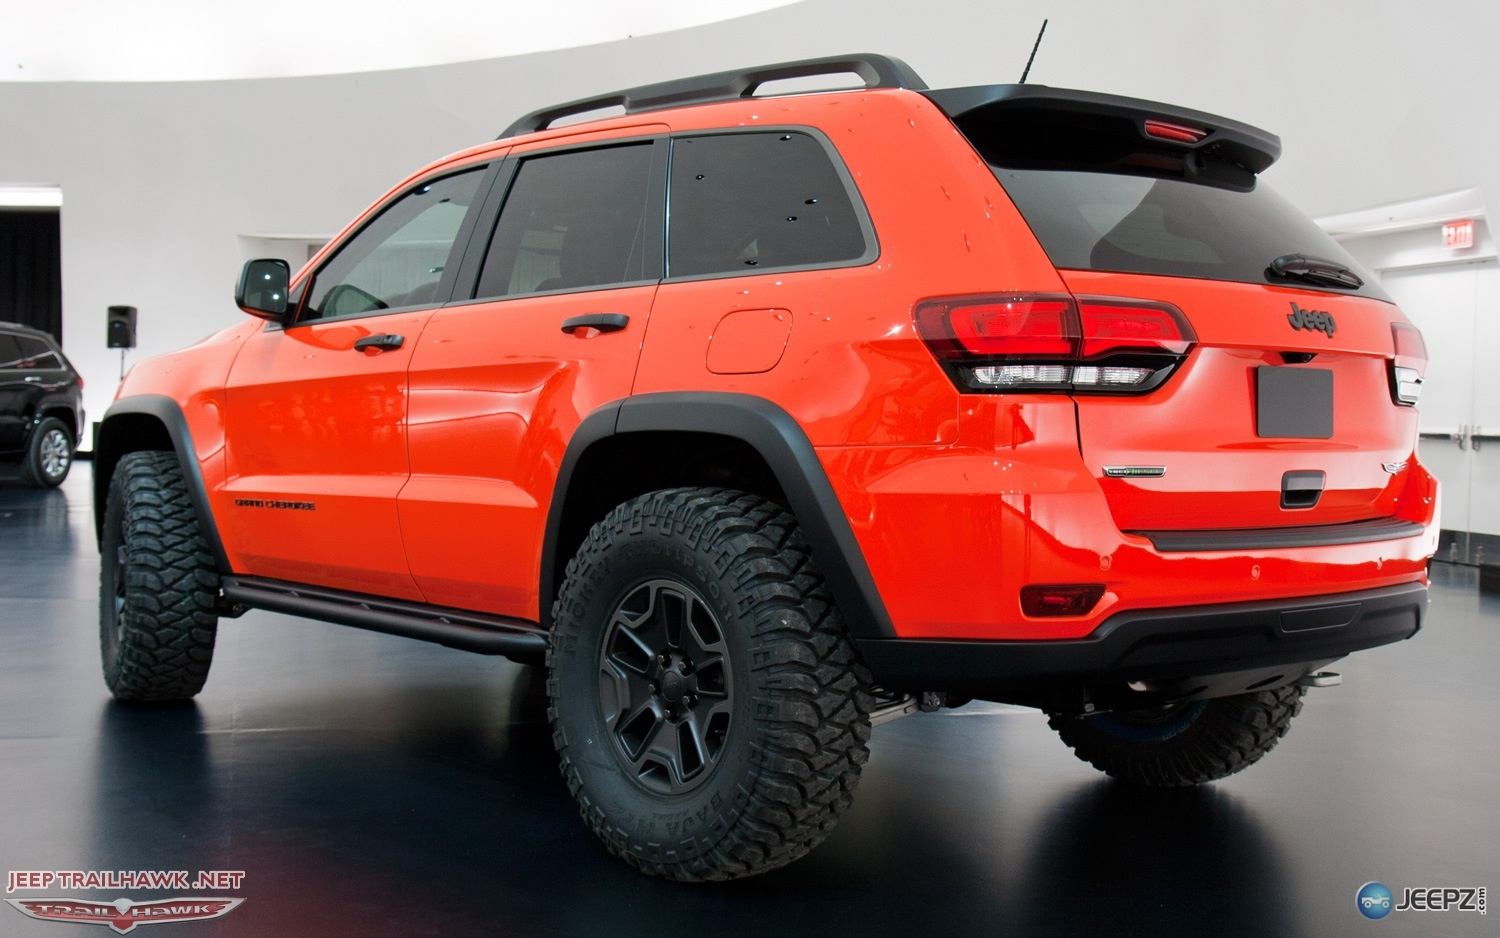 2013 Moab Concepts Revealed